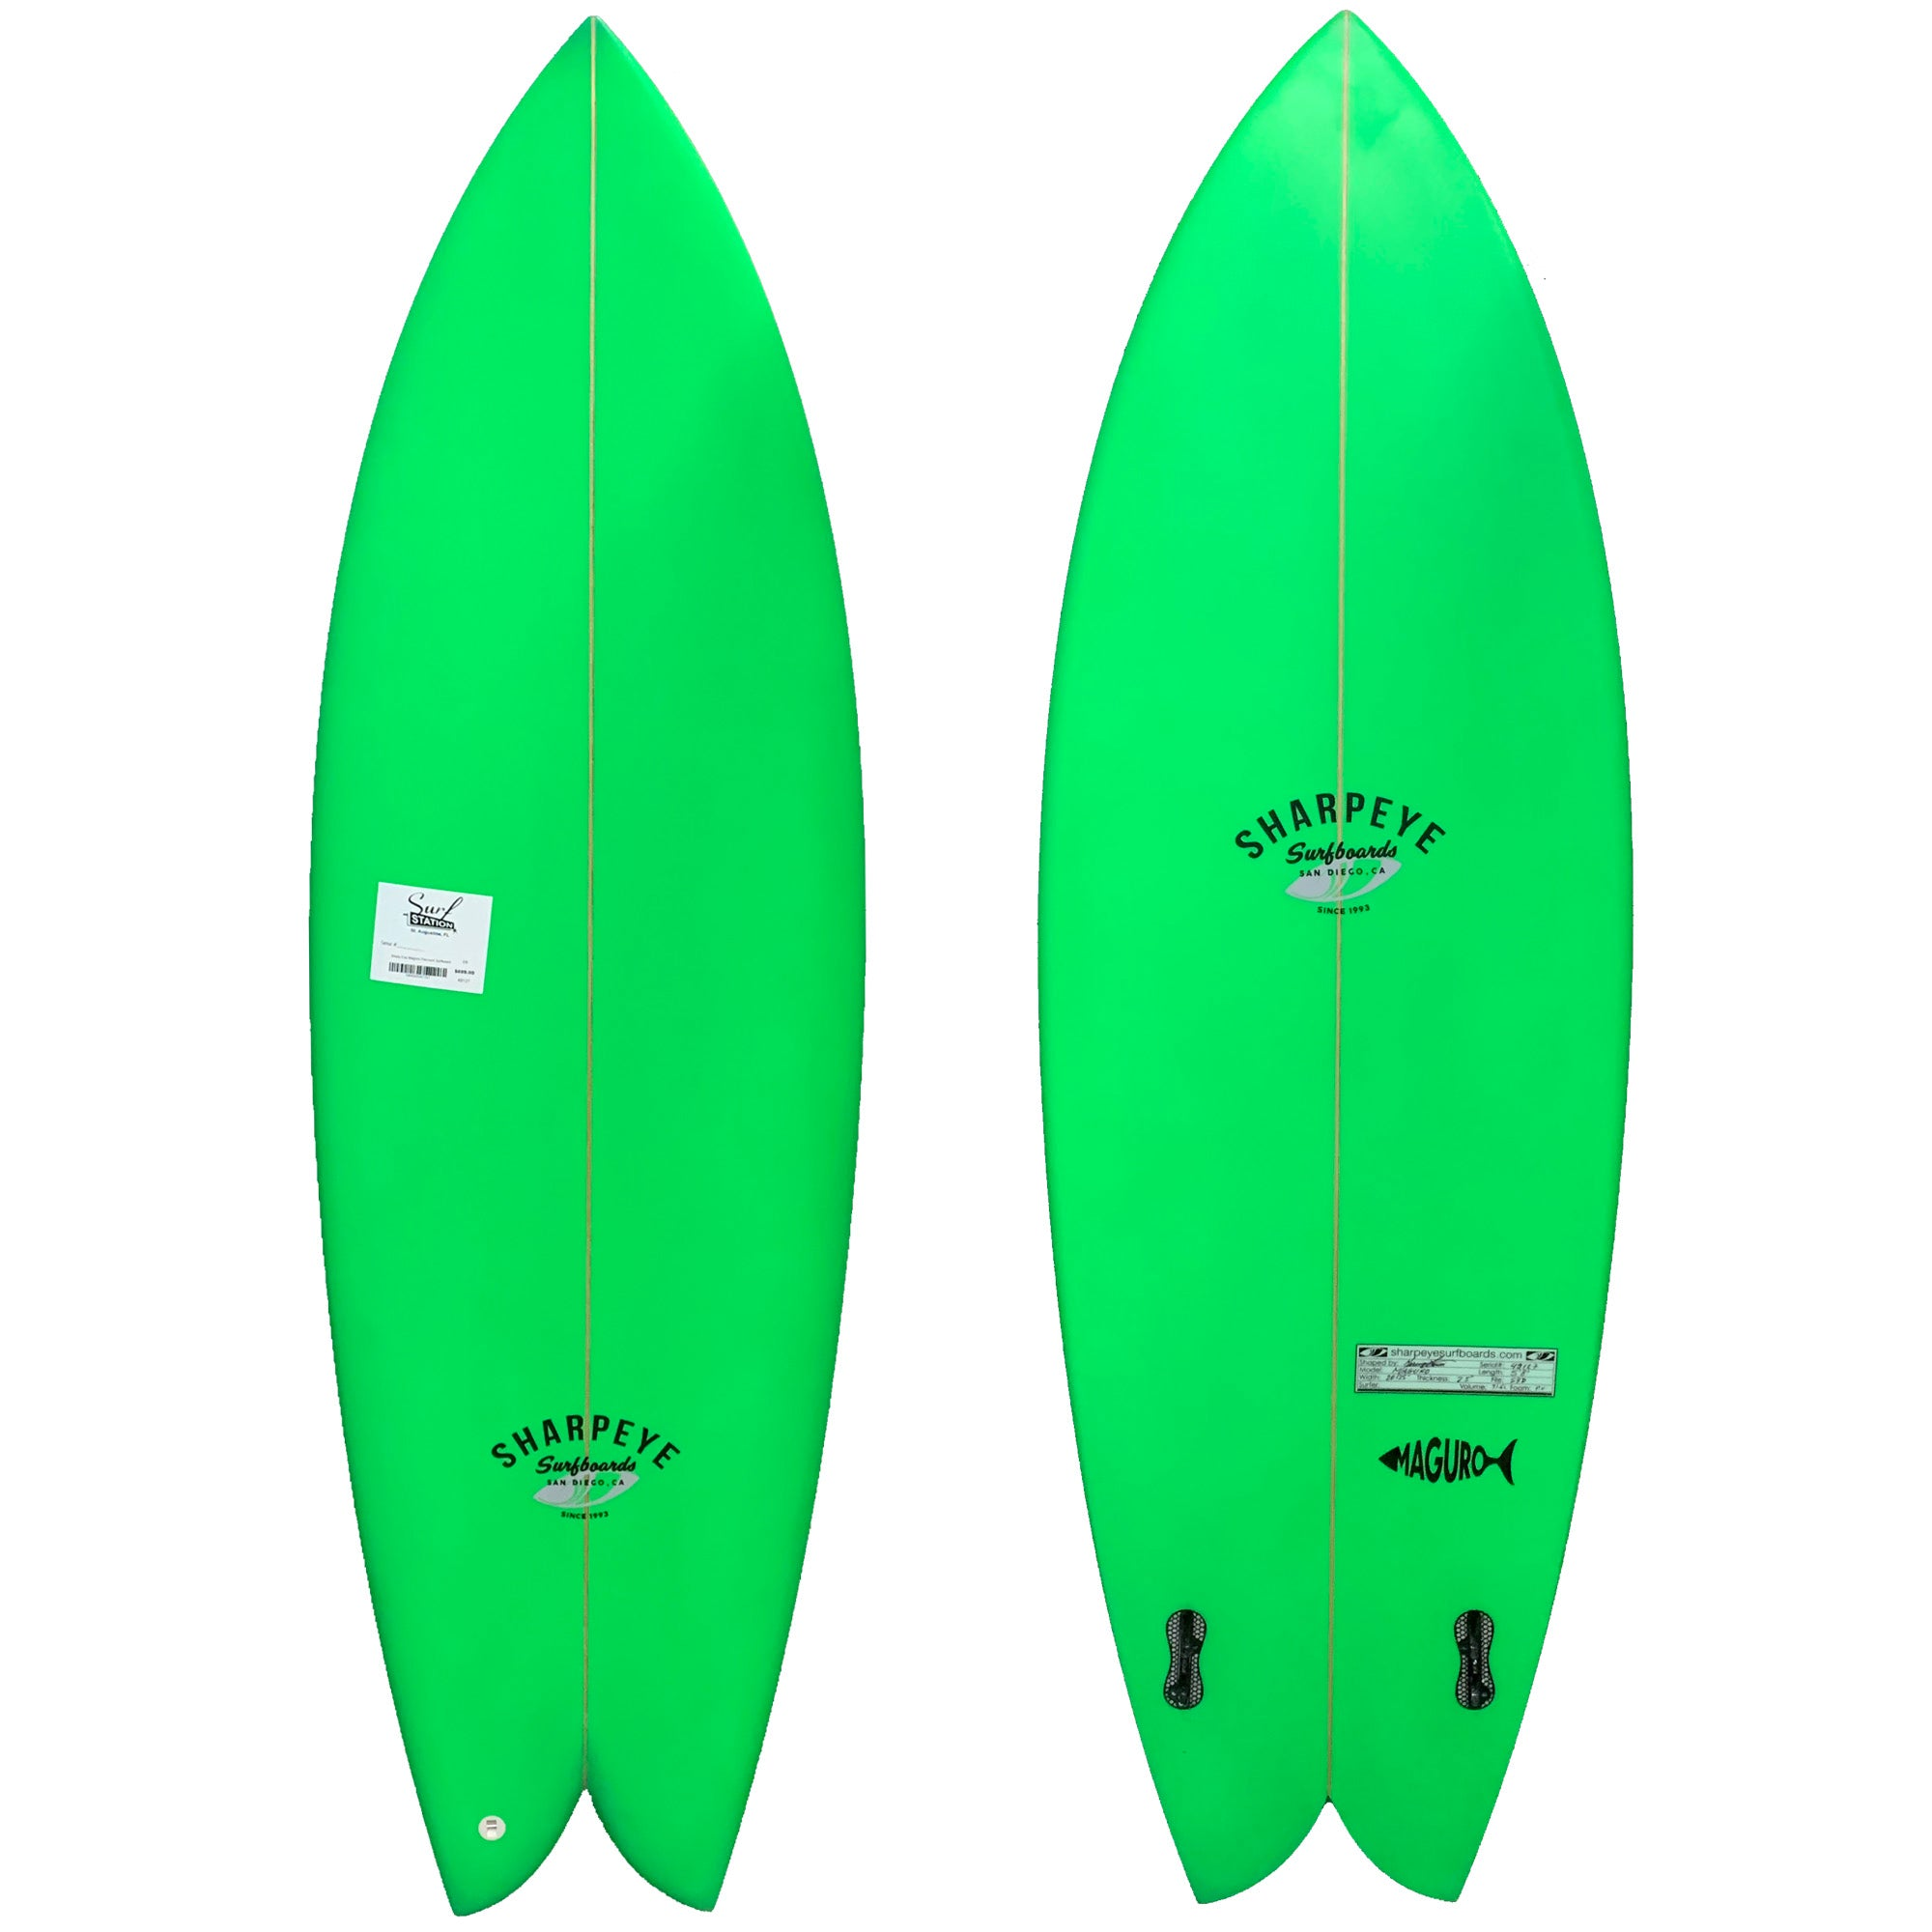 Sharp Eye Maguro Discount Surfboard